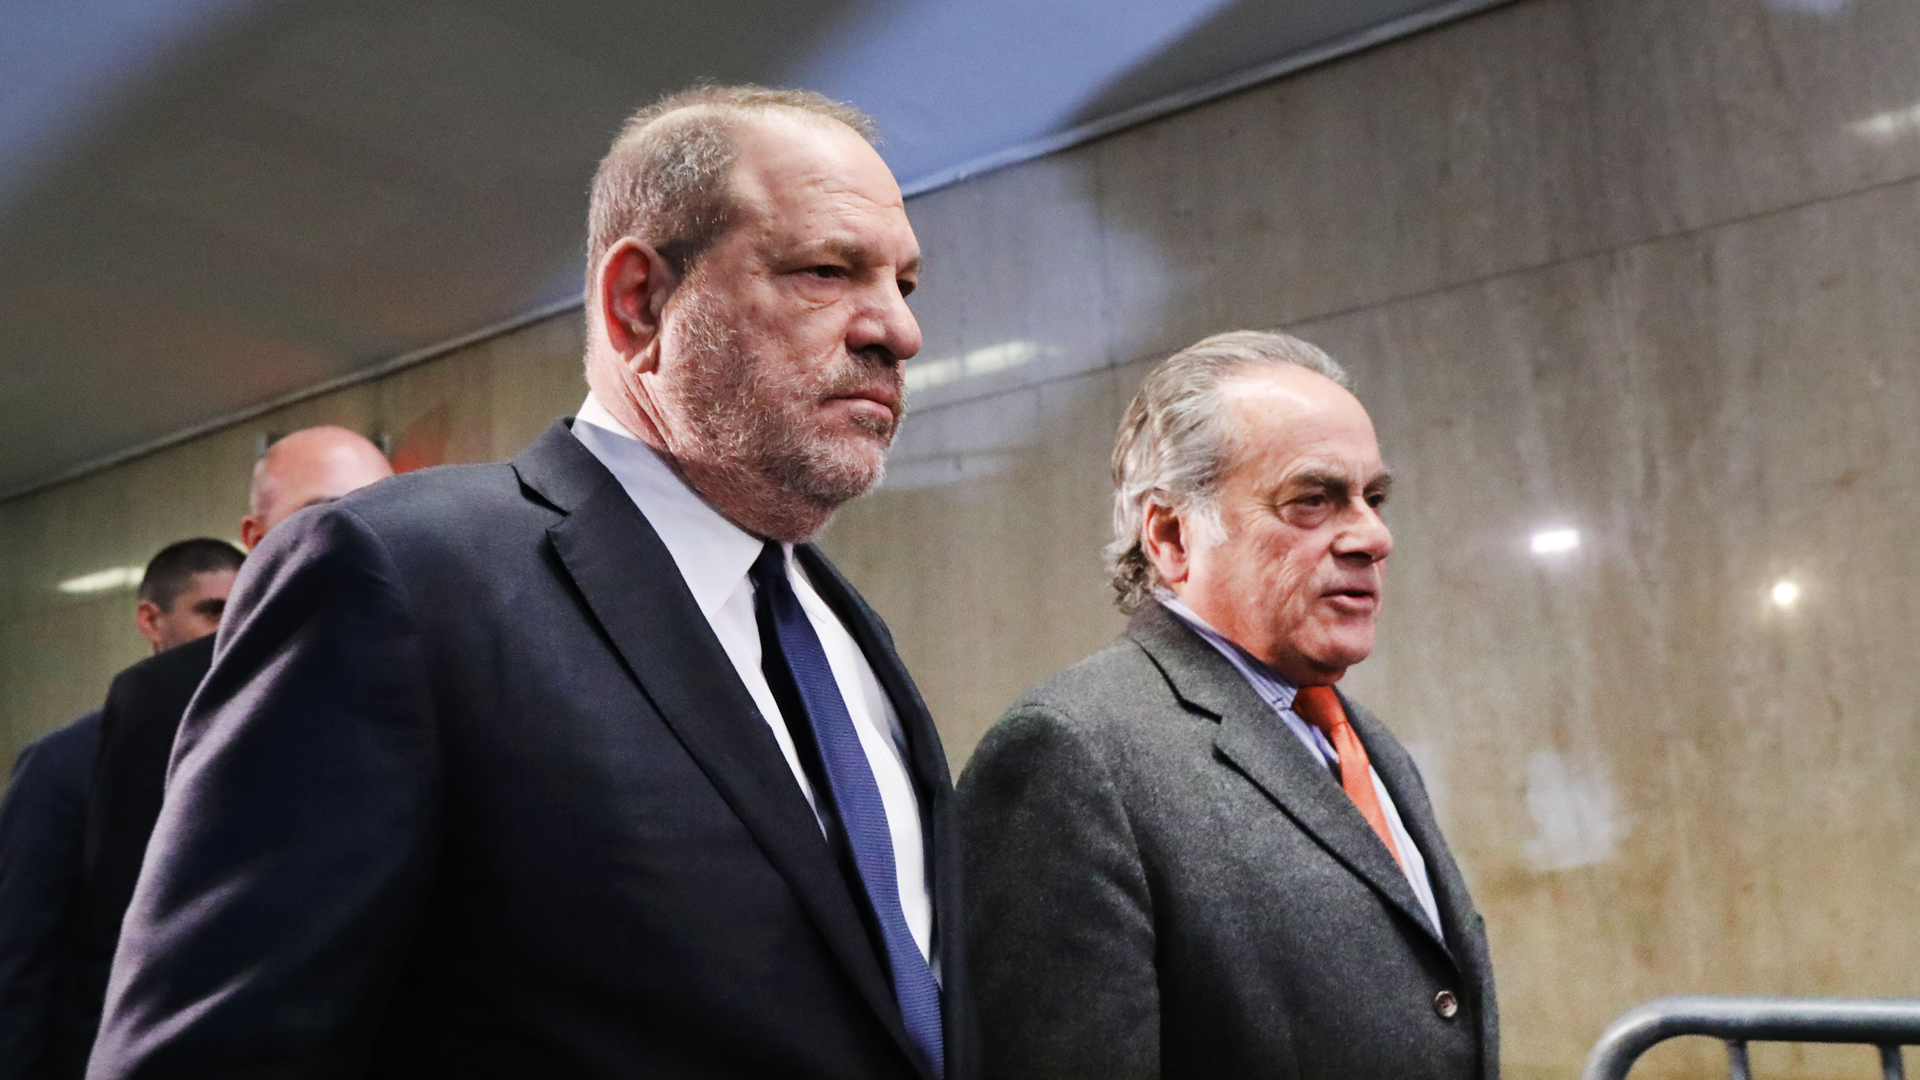 Harvey Weinstein arrives with his lawyer Benjamin Brafman for a court hearing at New York Criminal Court on Dec. 20, 2018, in New York City. (Credit: Spencer Platt/Getty Images)